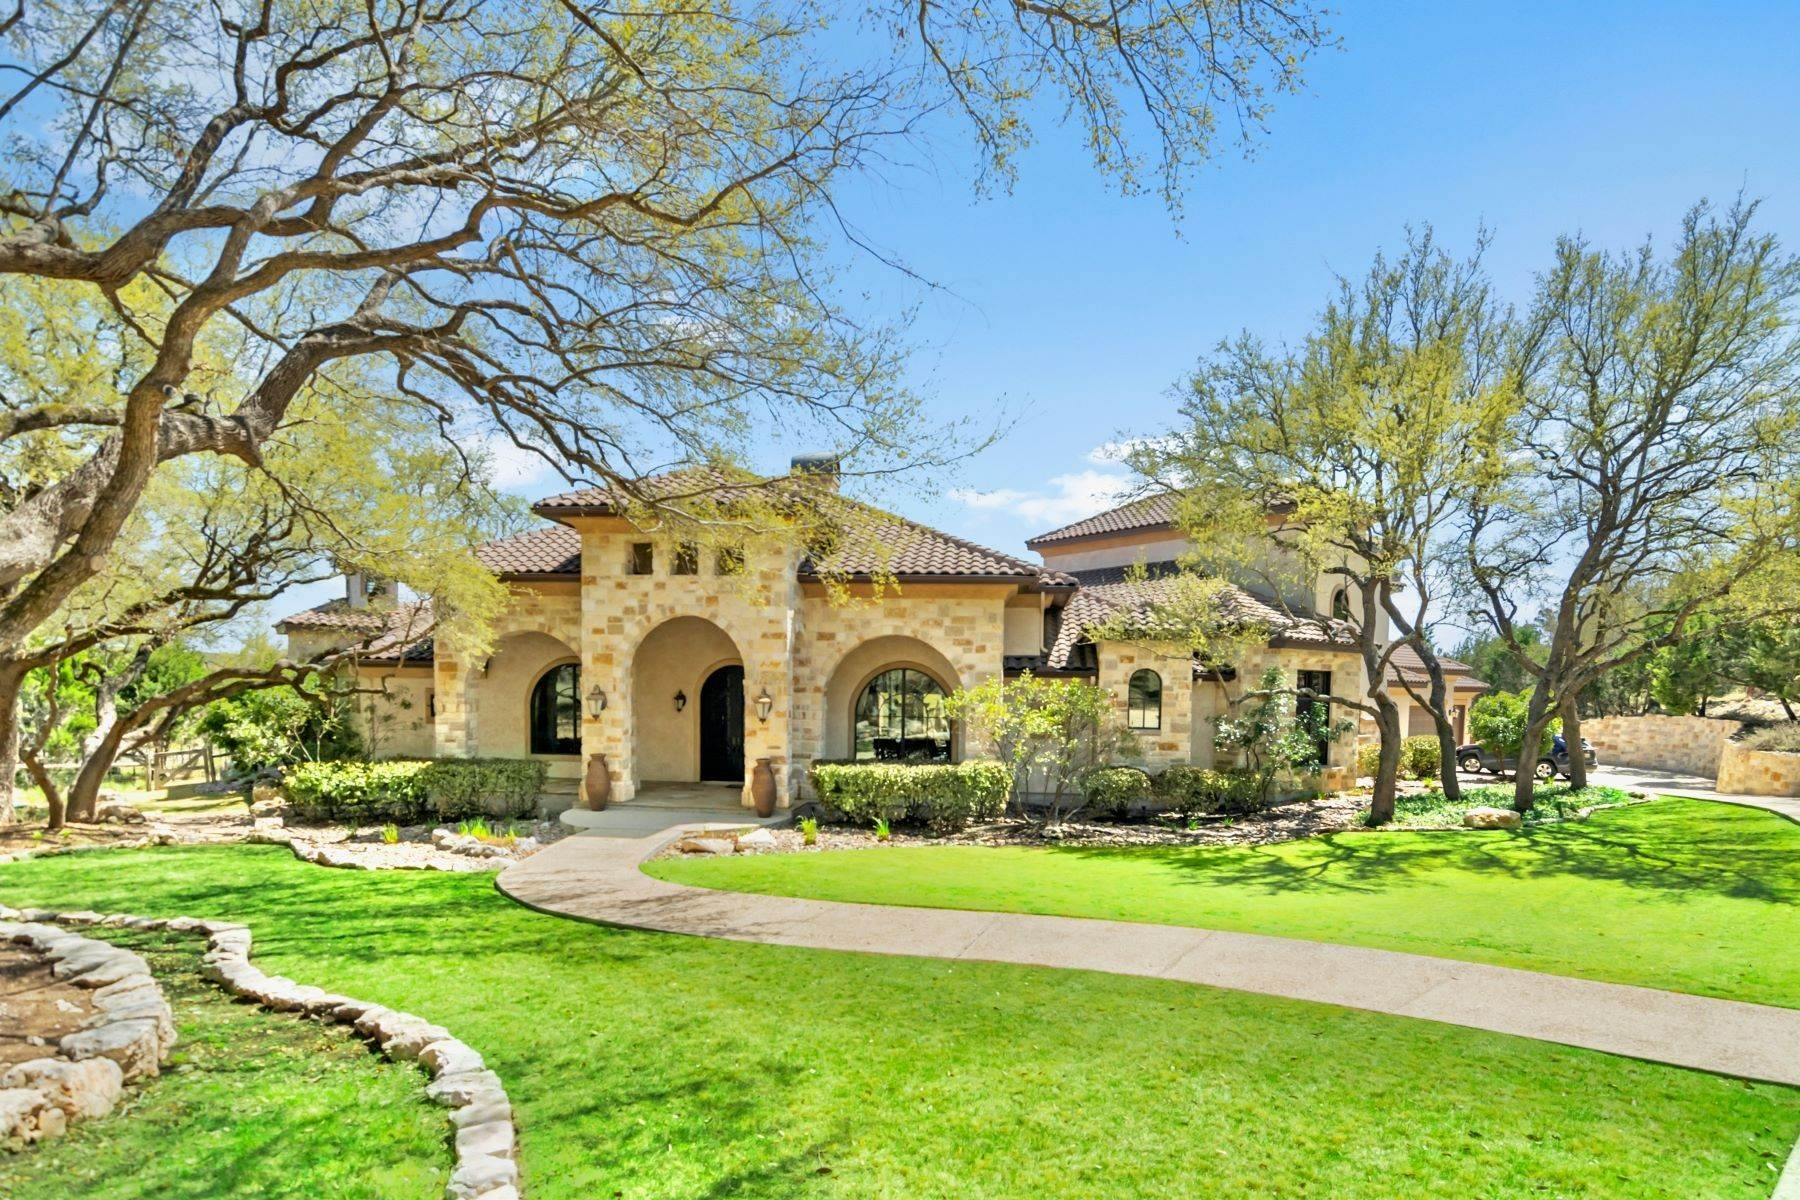 Single Family Homes for Sale at Exquisite Tuscan Style Family Home 153 Riverwood Boerne, Texas 78006 United States